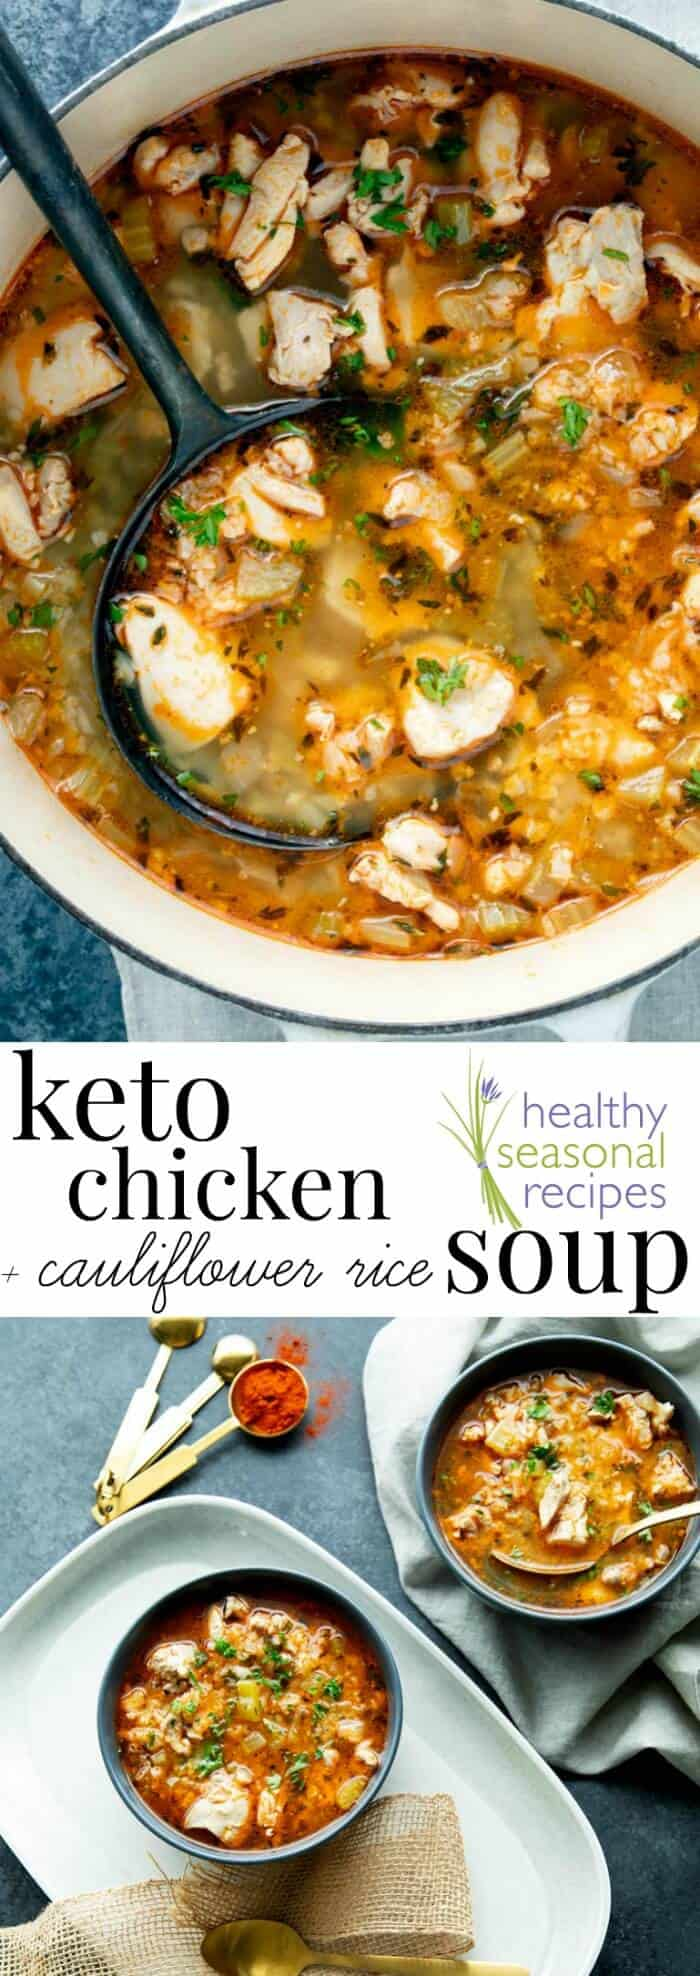 This Keto Chicken Soup is comforting and delicious with cauliflower rice and chicken thighs and is ready in less than 40 minutes. #lowcarb #kidfriendly #PaleoFriendly #DairyFree #GrainFree #GlutenFree